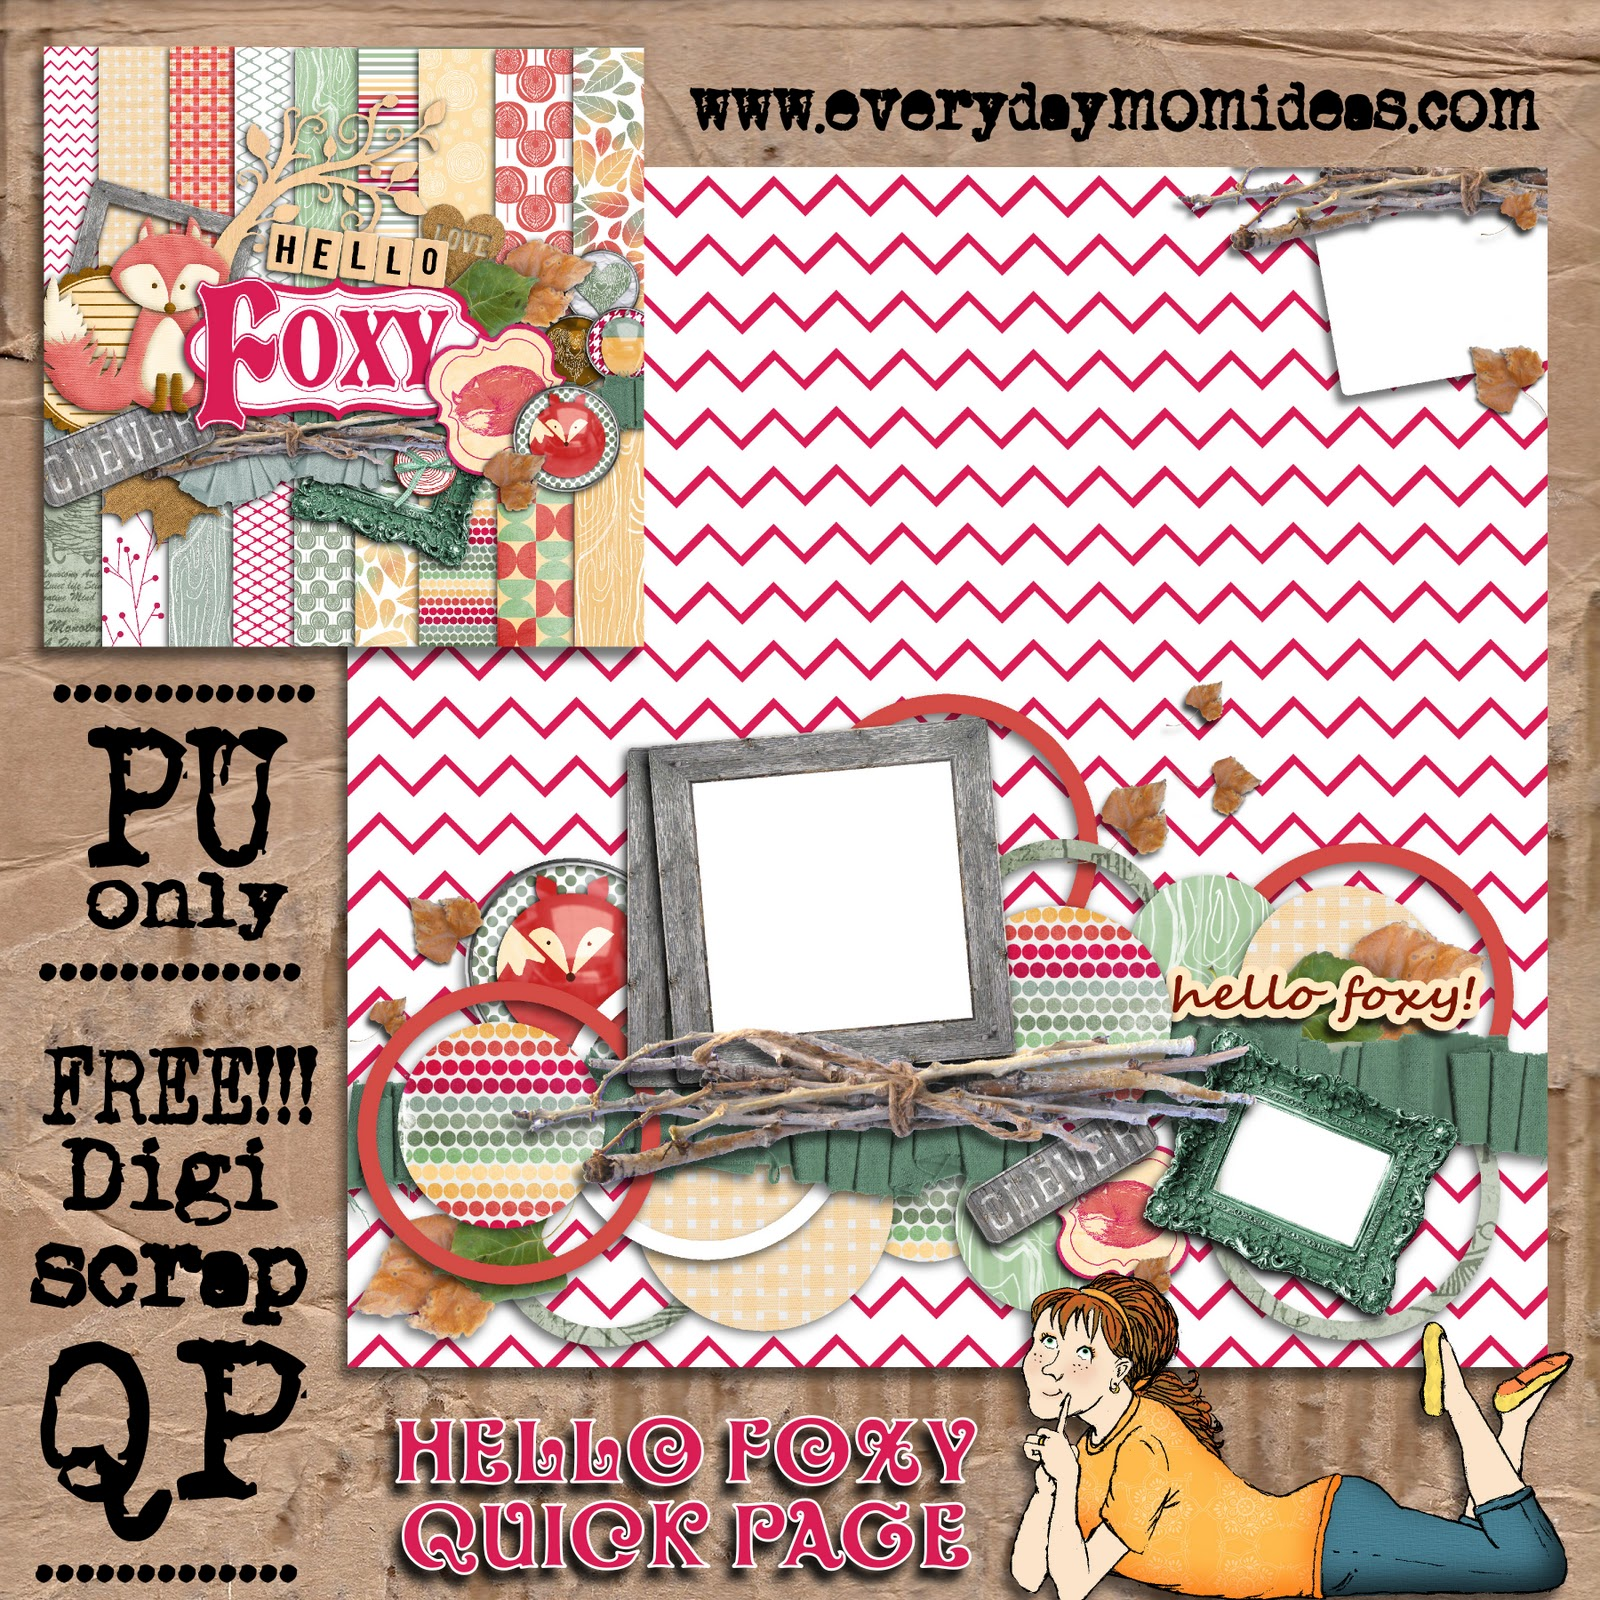 Hello foxy -free quick page download everyday mom ideas.